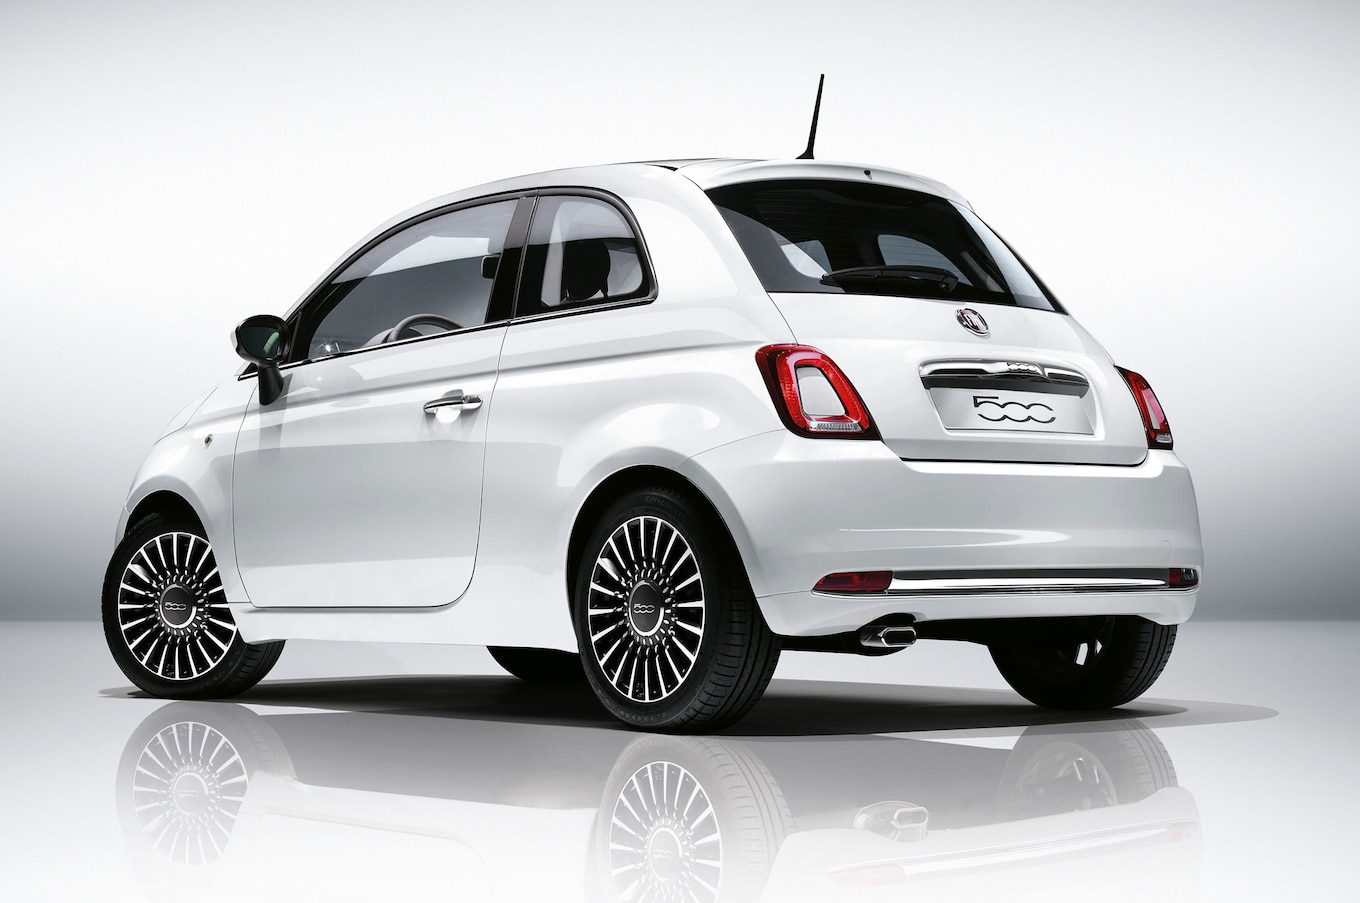 Fiat 500 Bilder 2016 Fiat 500 Reviews And Rating Motor Trend